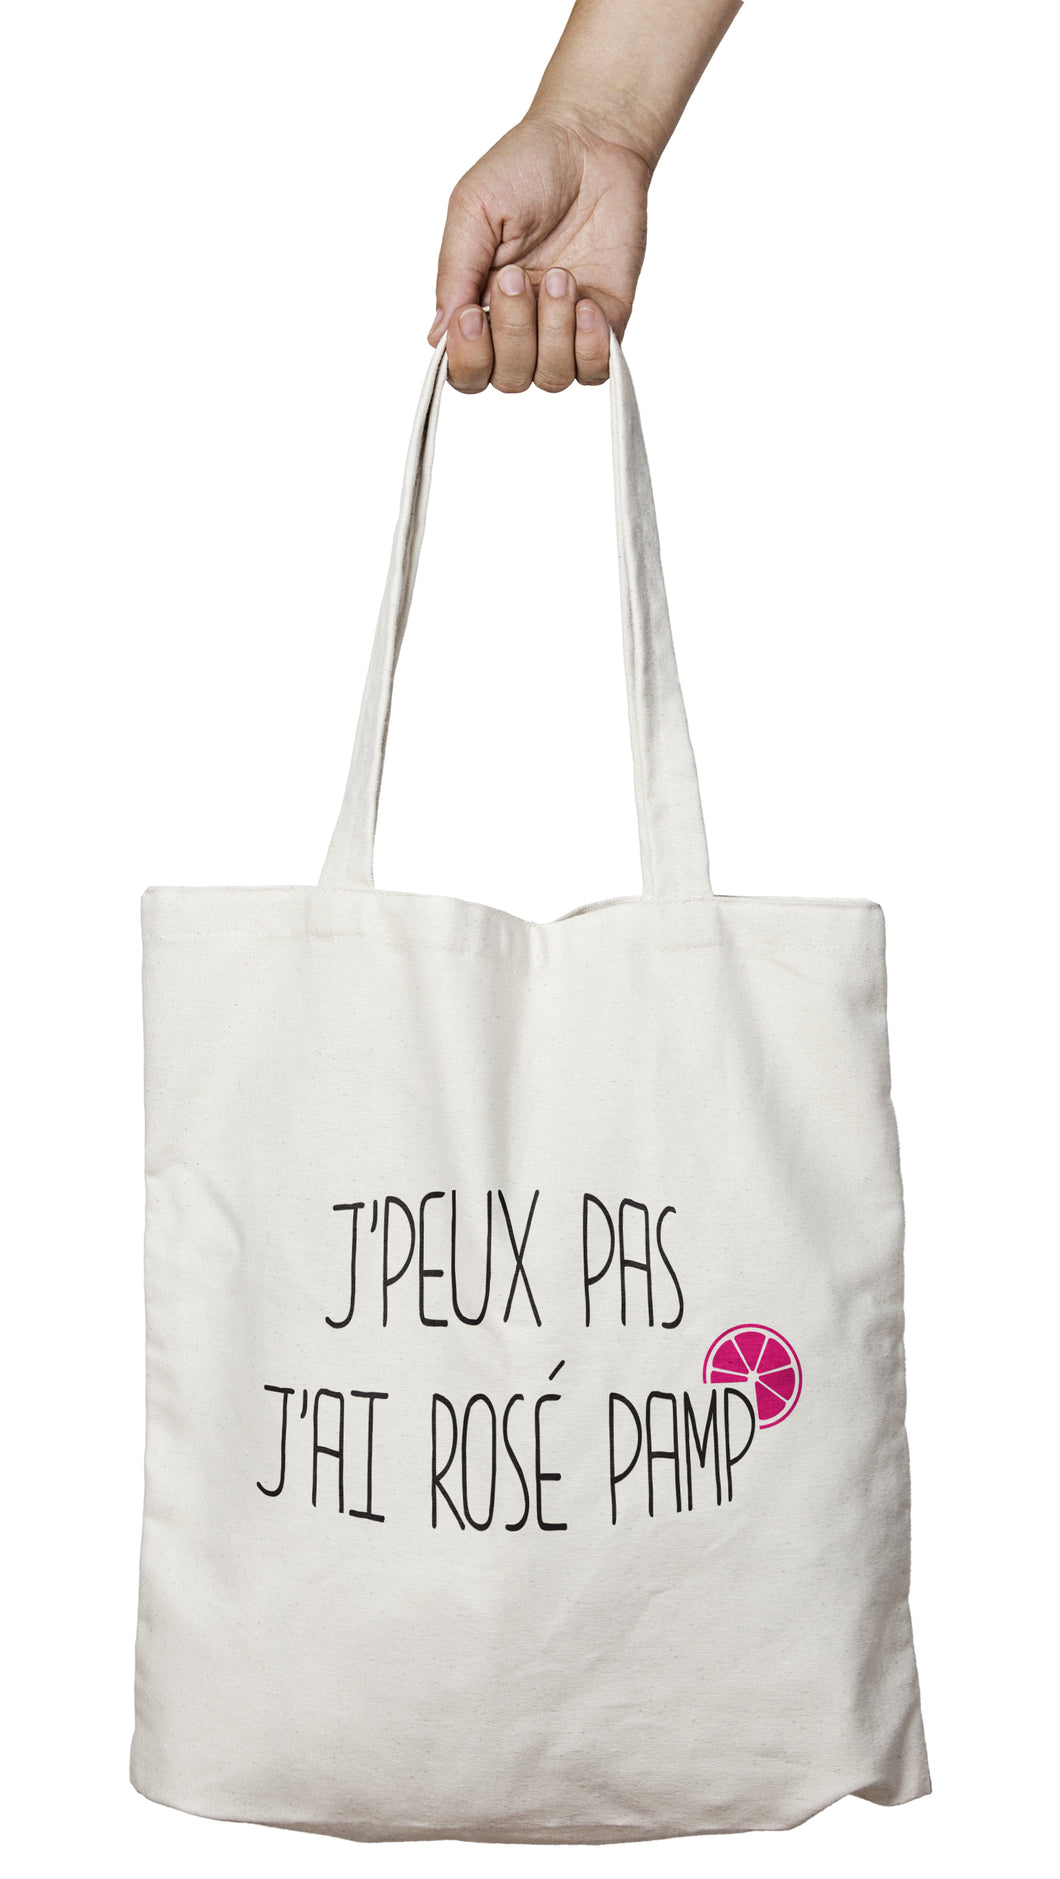 Tote bag original j'peux pas j'ai Rosé pamp' boisson alcool cocktail So Custom